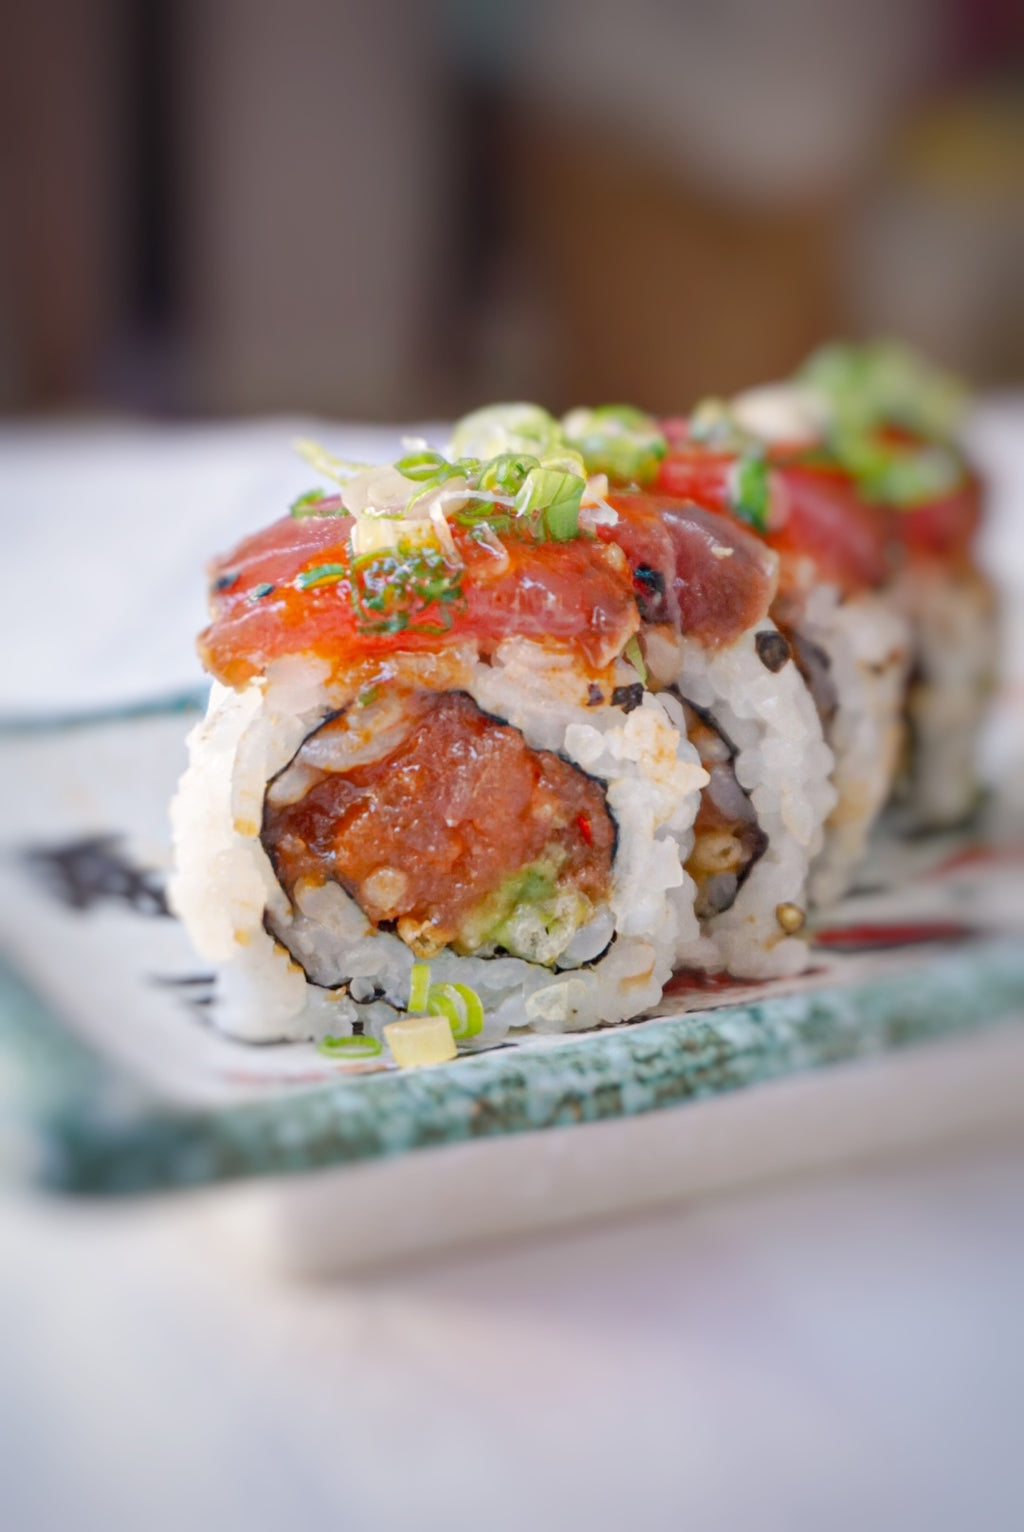 CT Roll - Larchmont